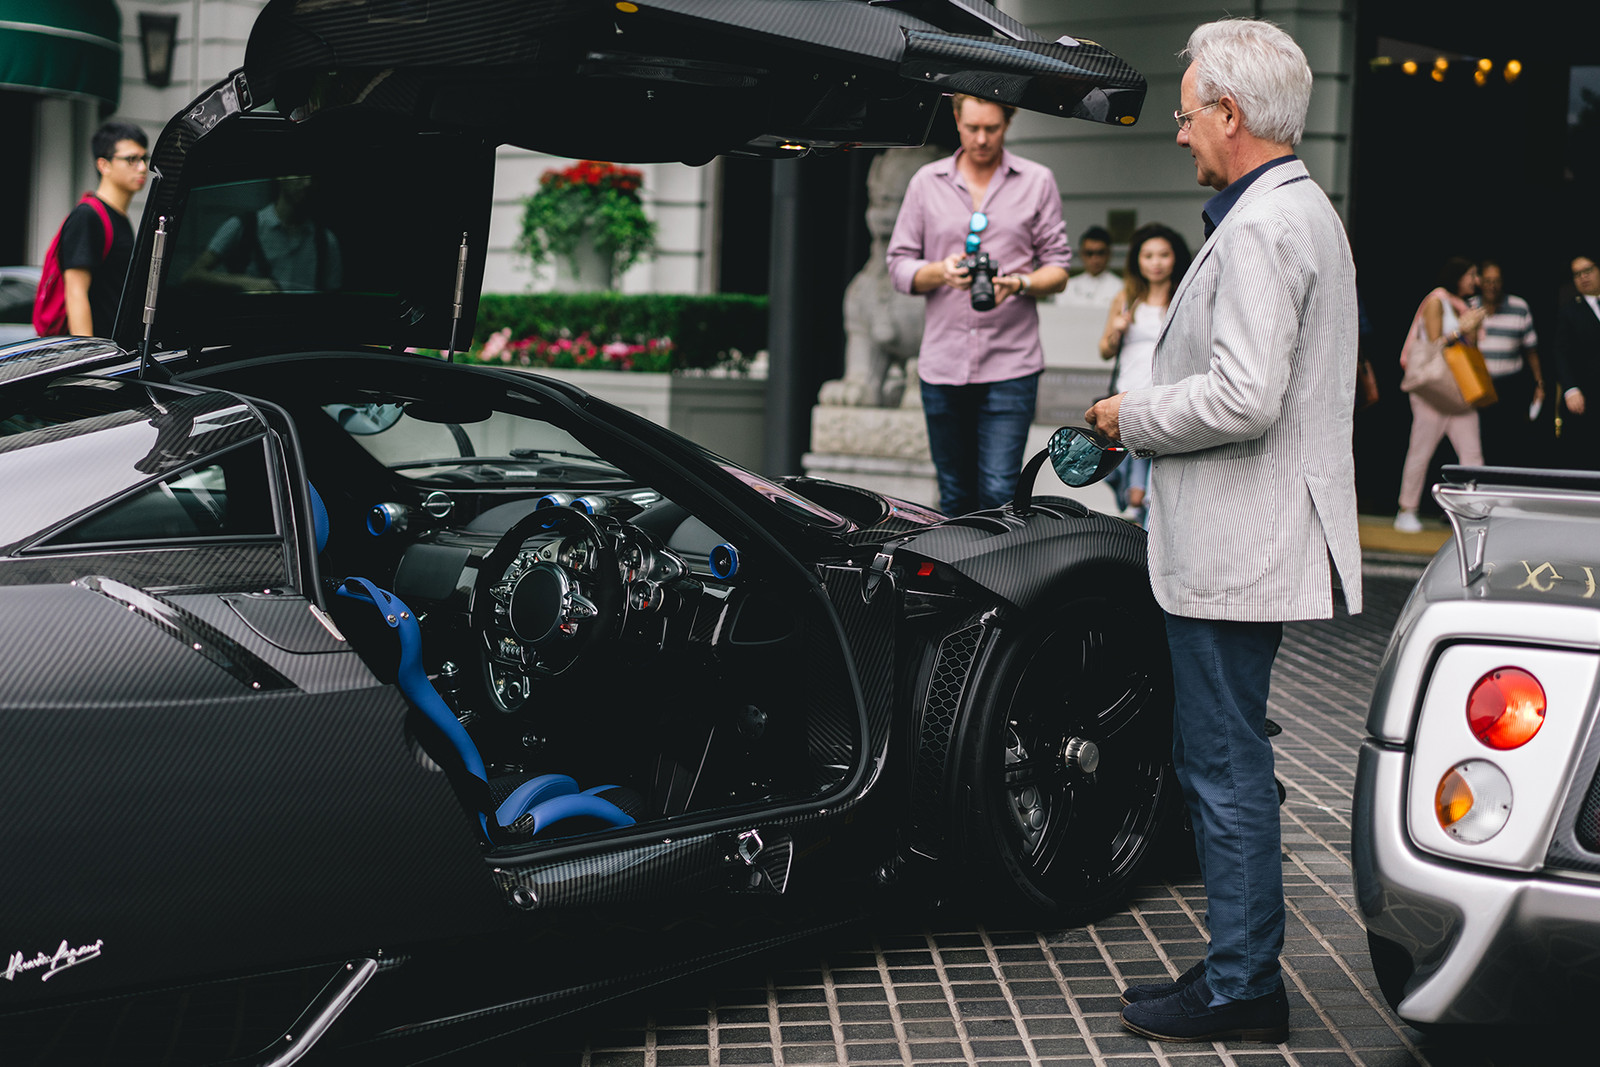 A Conversation with Horacio Pagani Zonda Huayra Hypercar Sportscar Supercar Super car racing Titanium Carbon Fiber Sports Expensive Luxury Hong Kong exhaust music fancy Music Tech Electric Motor Horsepower